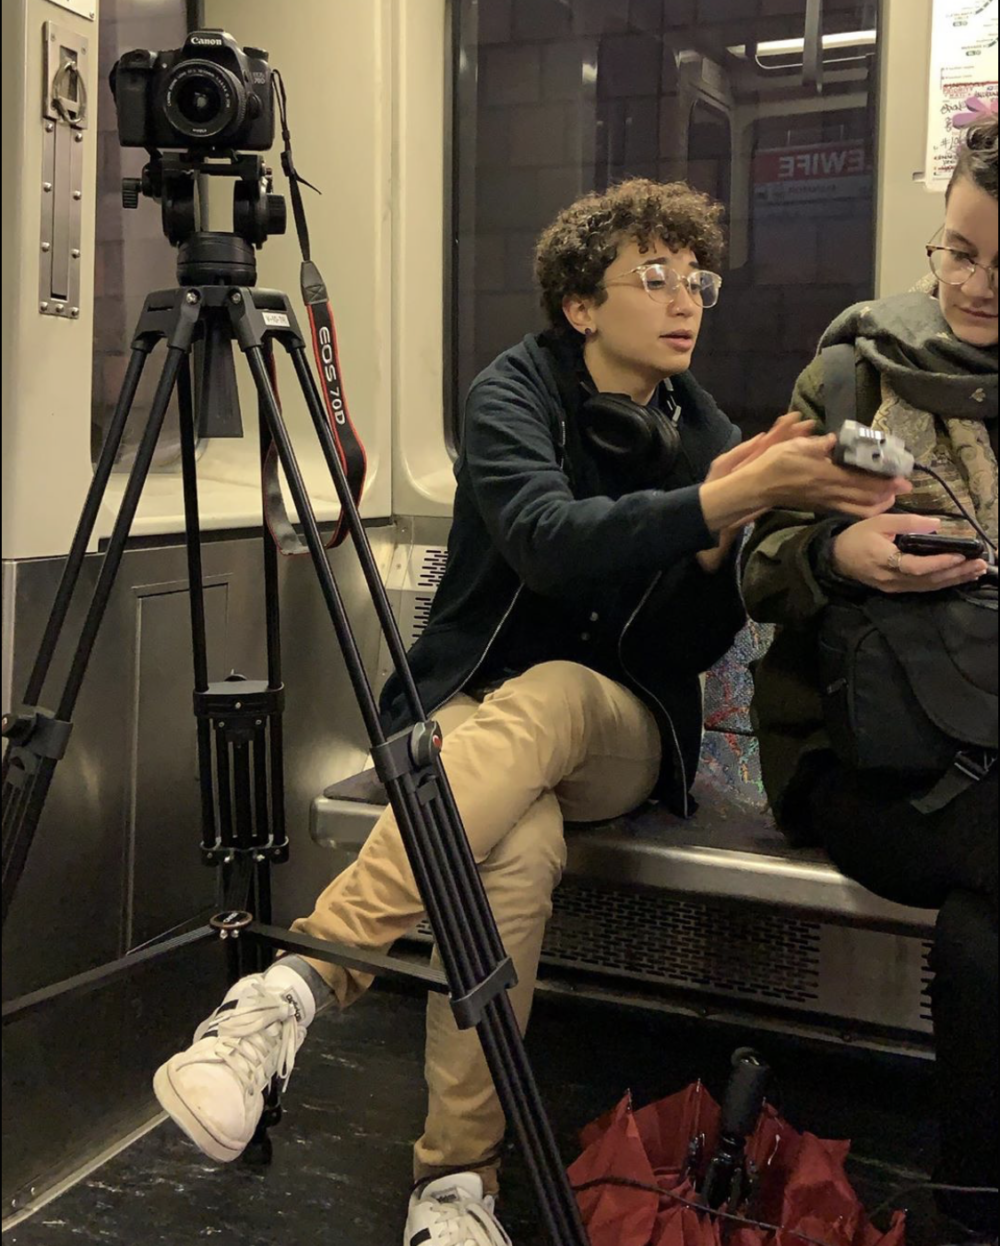 a picture of me and a tripod/camera set up on the train car